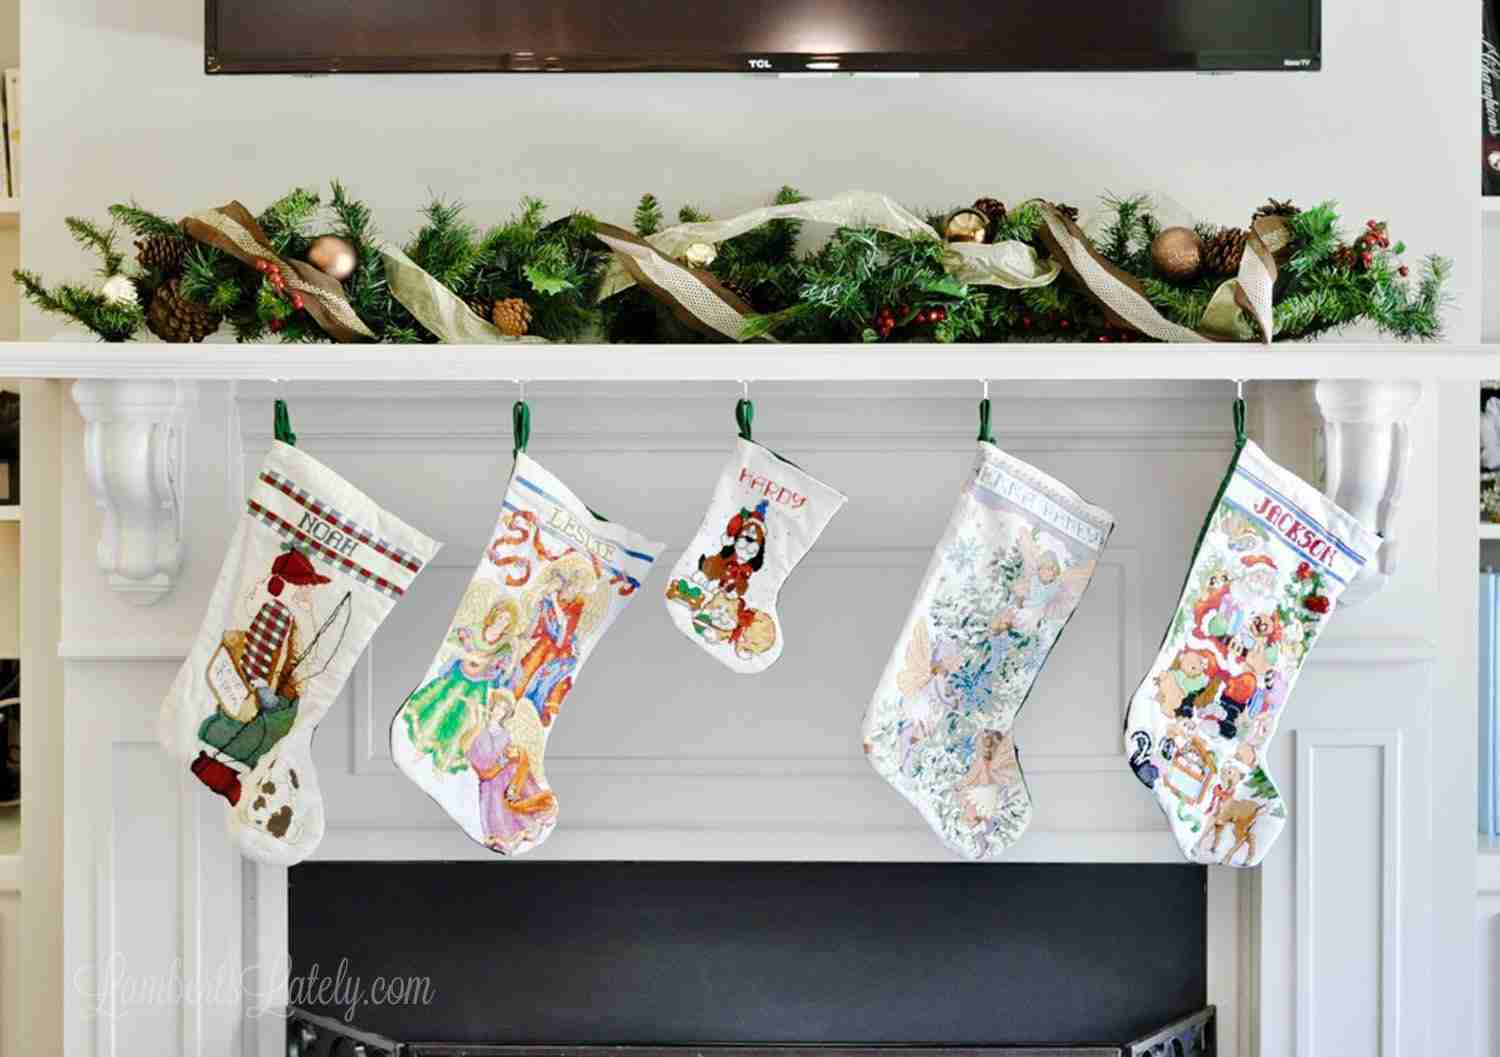 This is a great collection of some of the best stockingstuffers for toddlers or preschoolers - lots of cheap, creative ideas! Great for 1-5 years old and has ideas for both boys and girls.